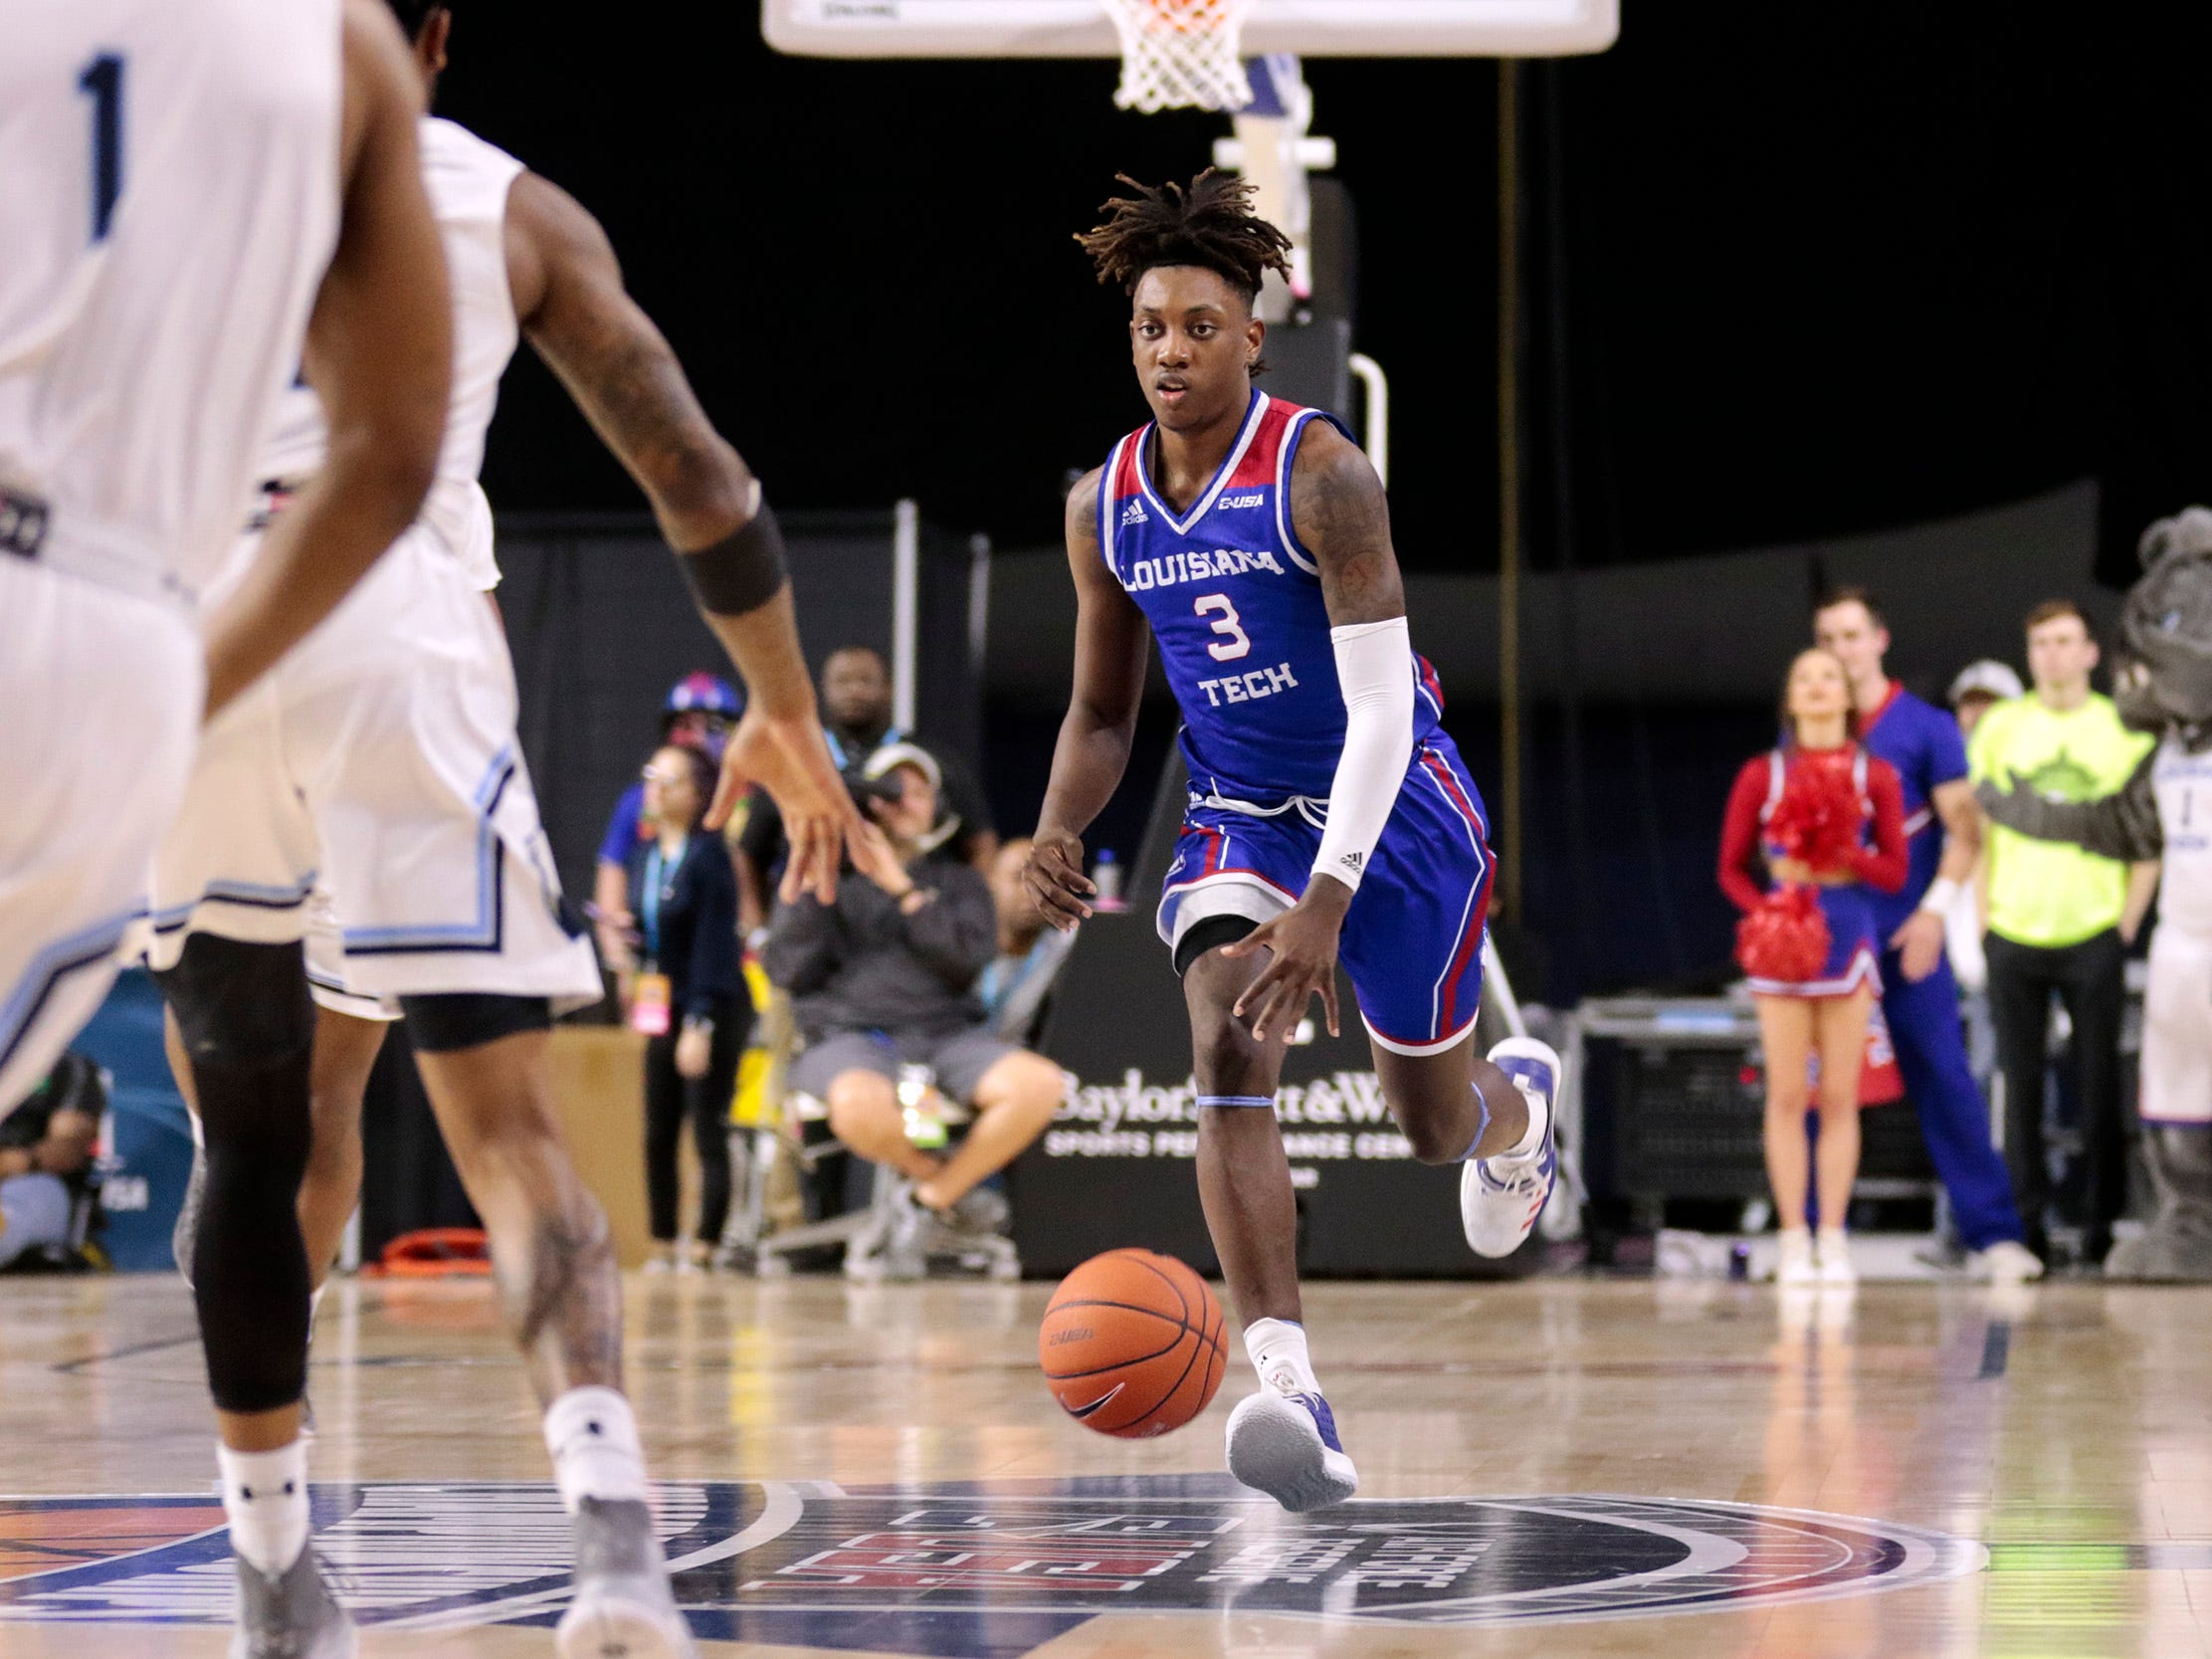 Louisiana Tech blows late 7-point lead, ousted at C-USA tourney